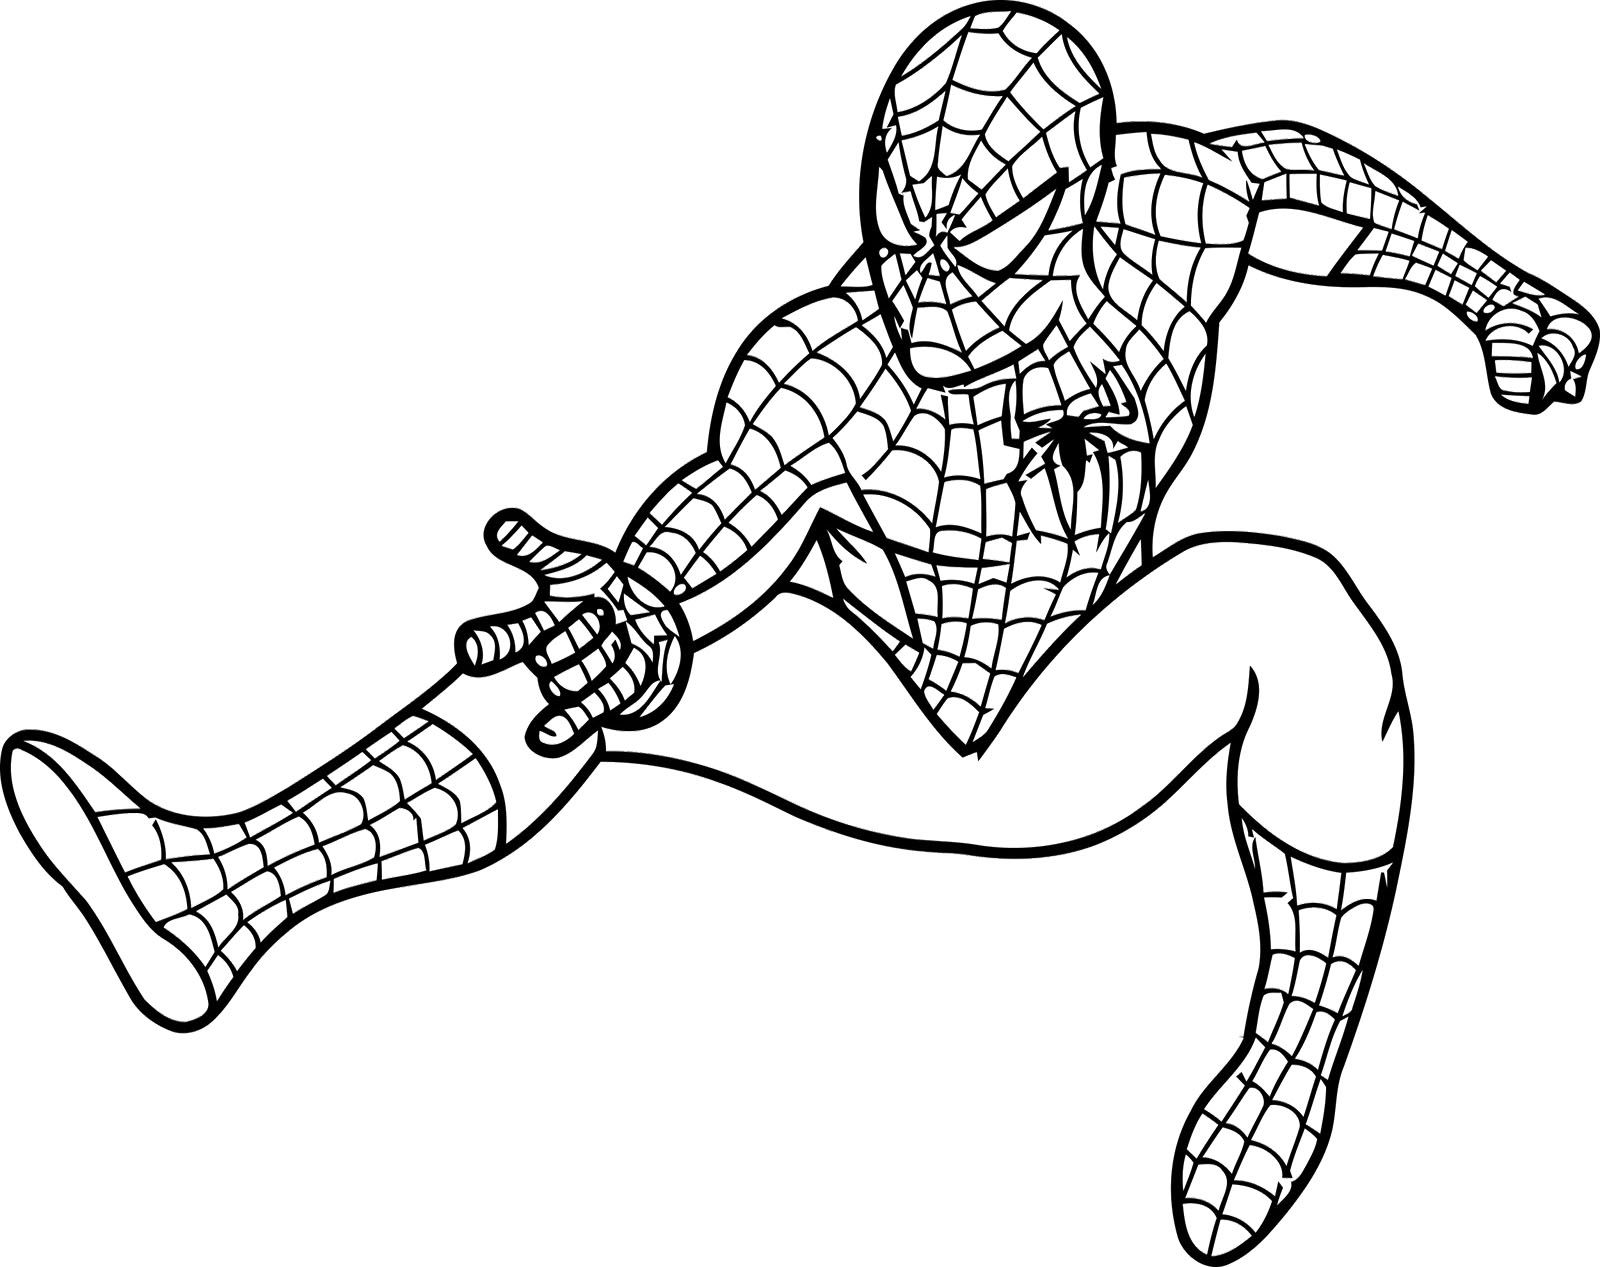 spiderman coloring page Yenimescaleco